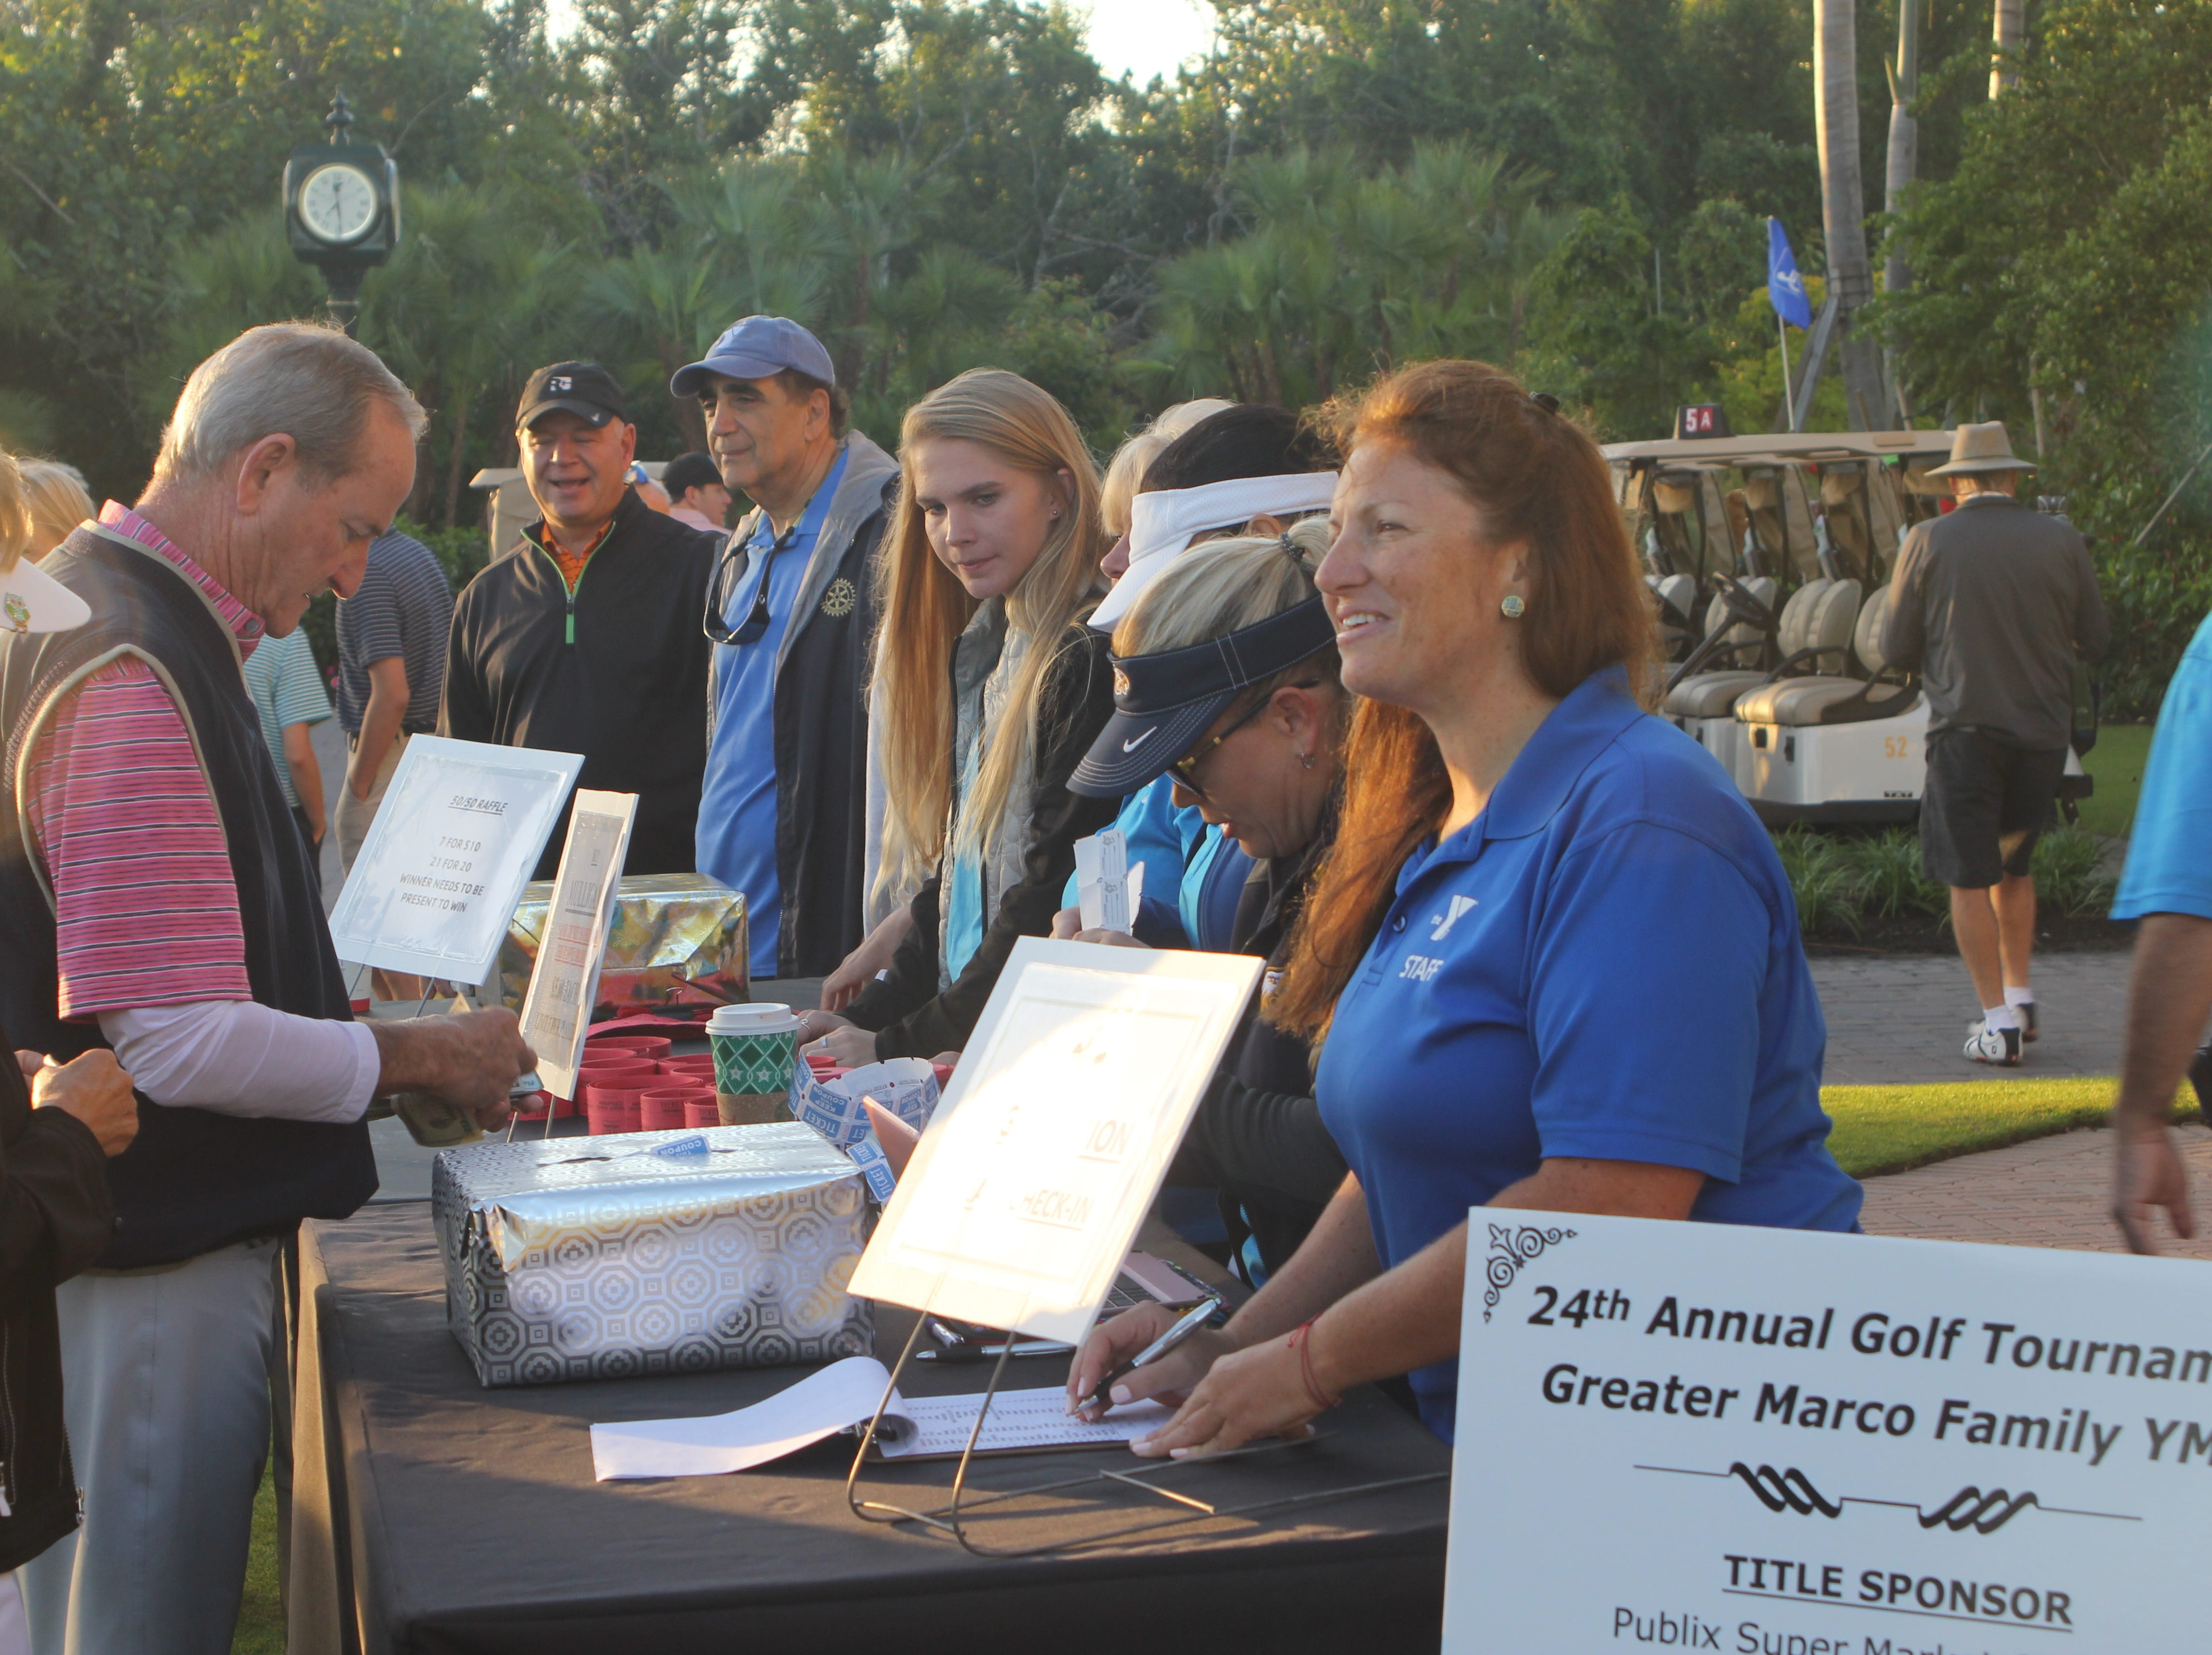 A golfer goes through the check-in procedure before the start of the tournament.